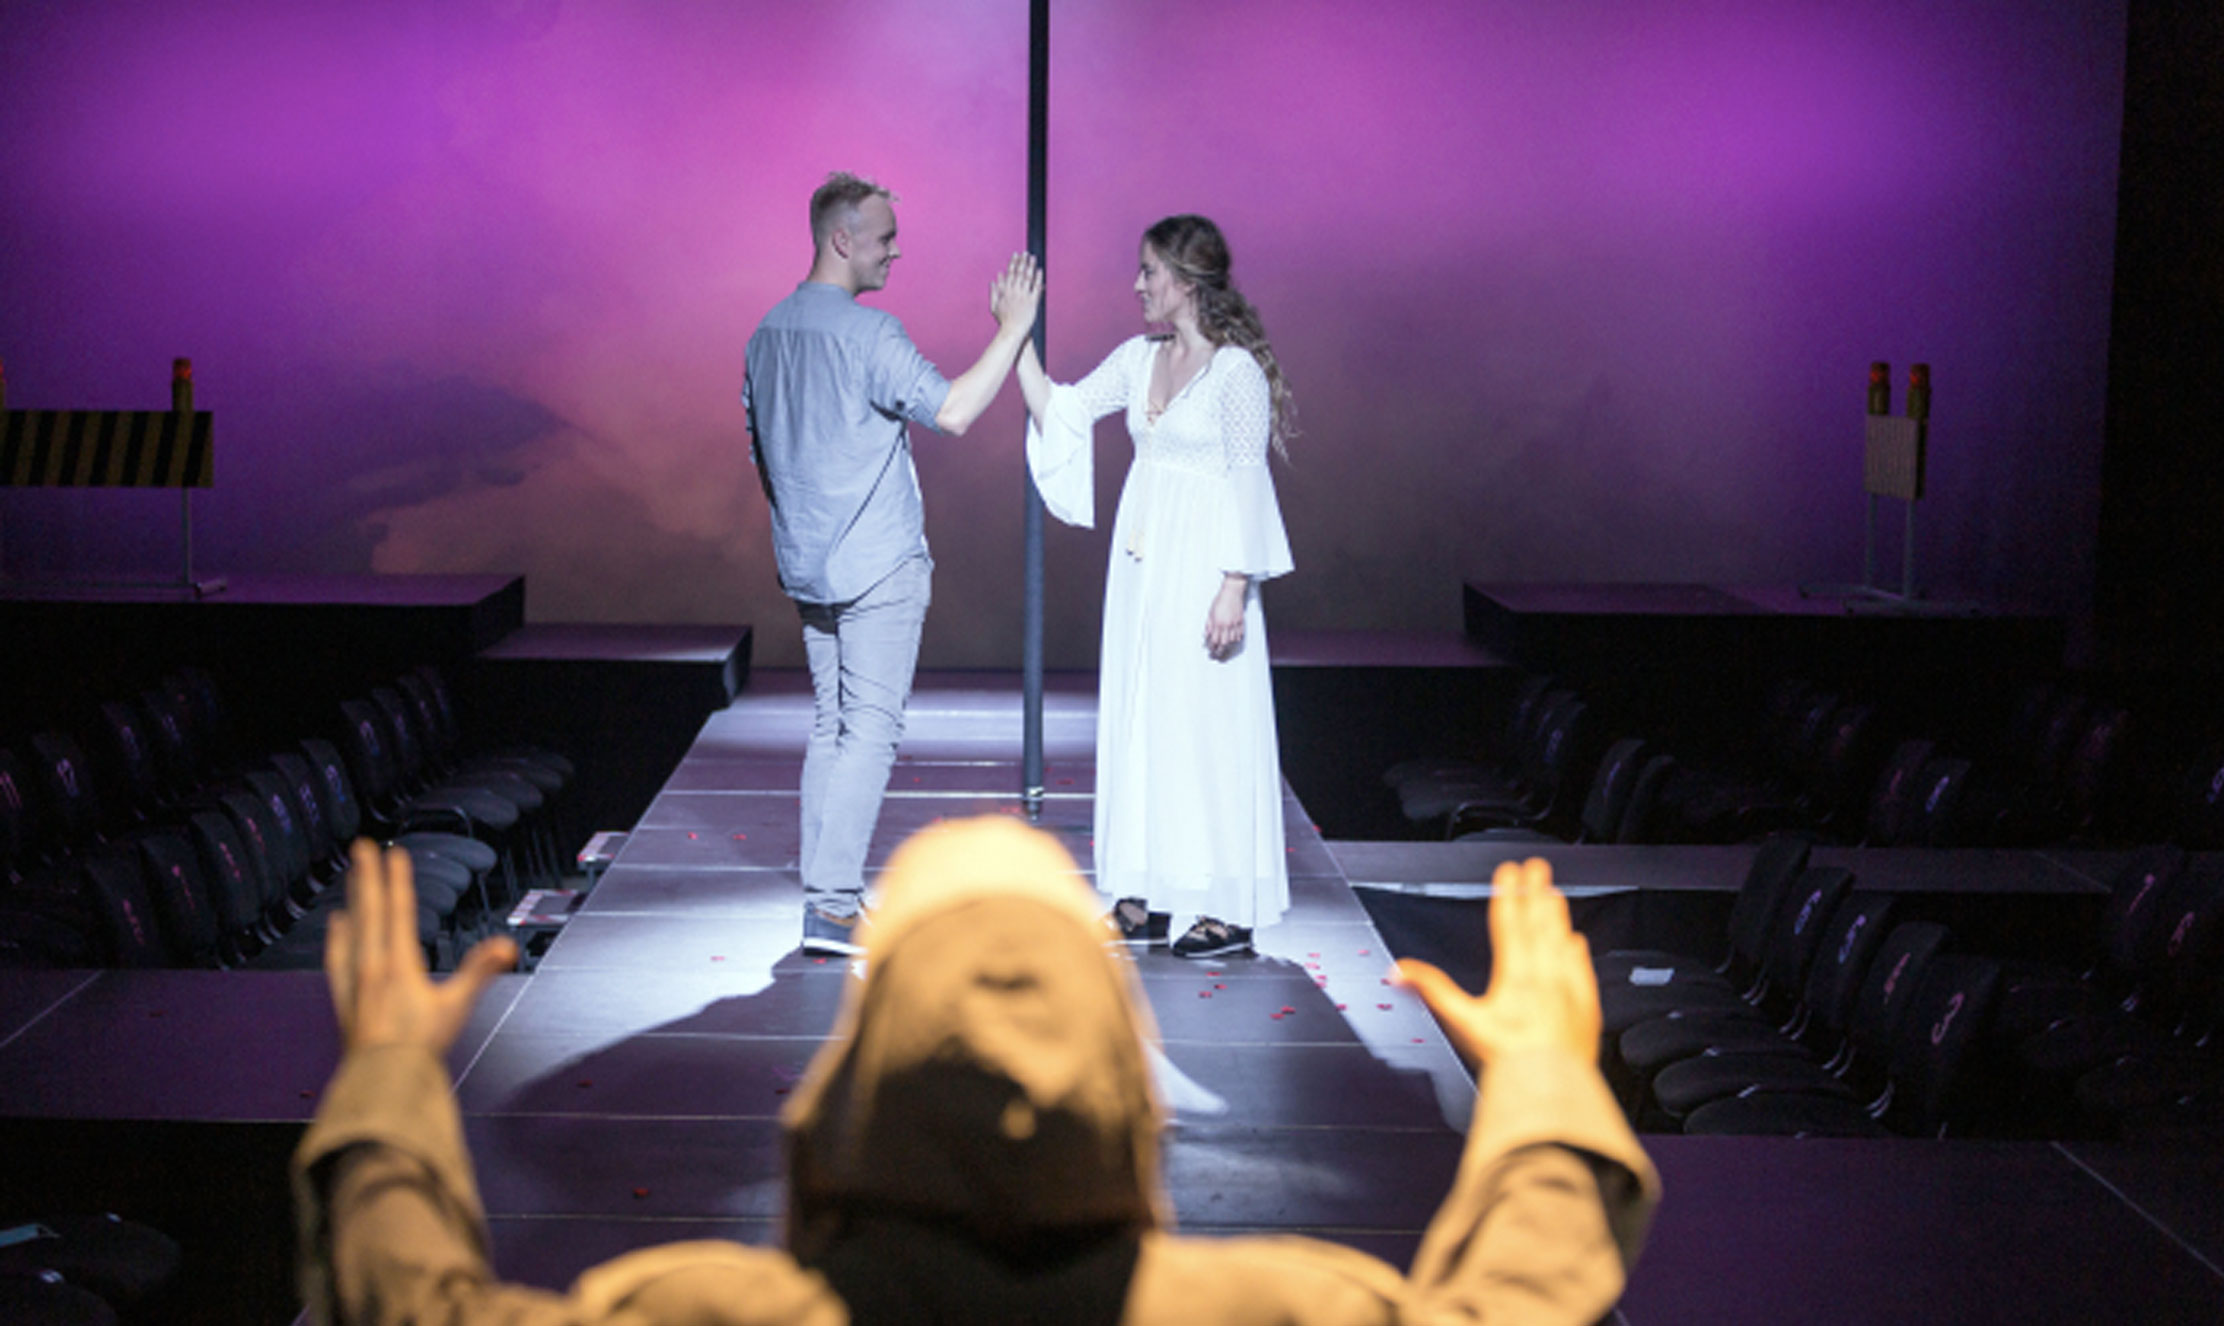 On a stage, a man and woman dressed in light colours stand facing each other and clasping hands.